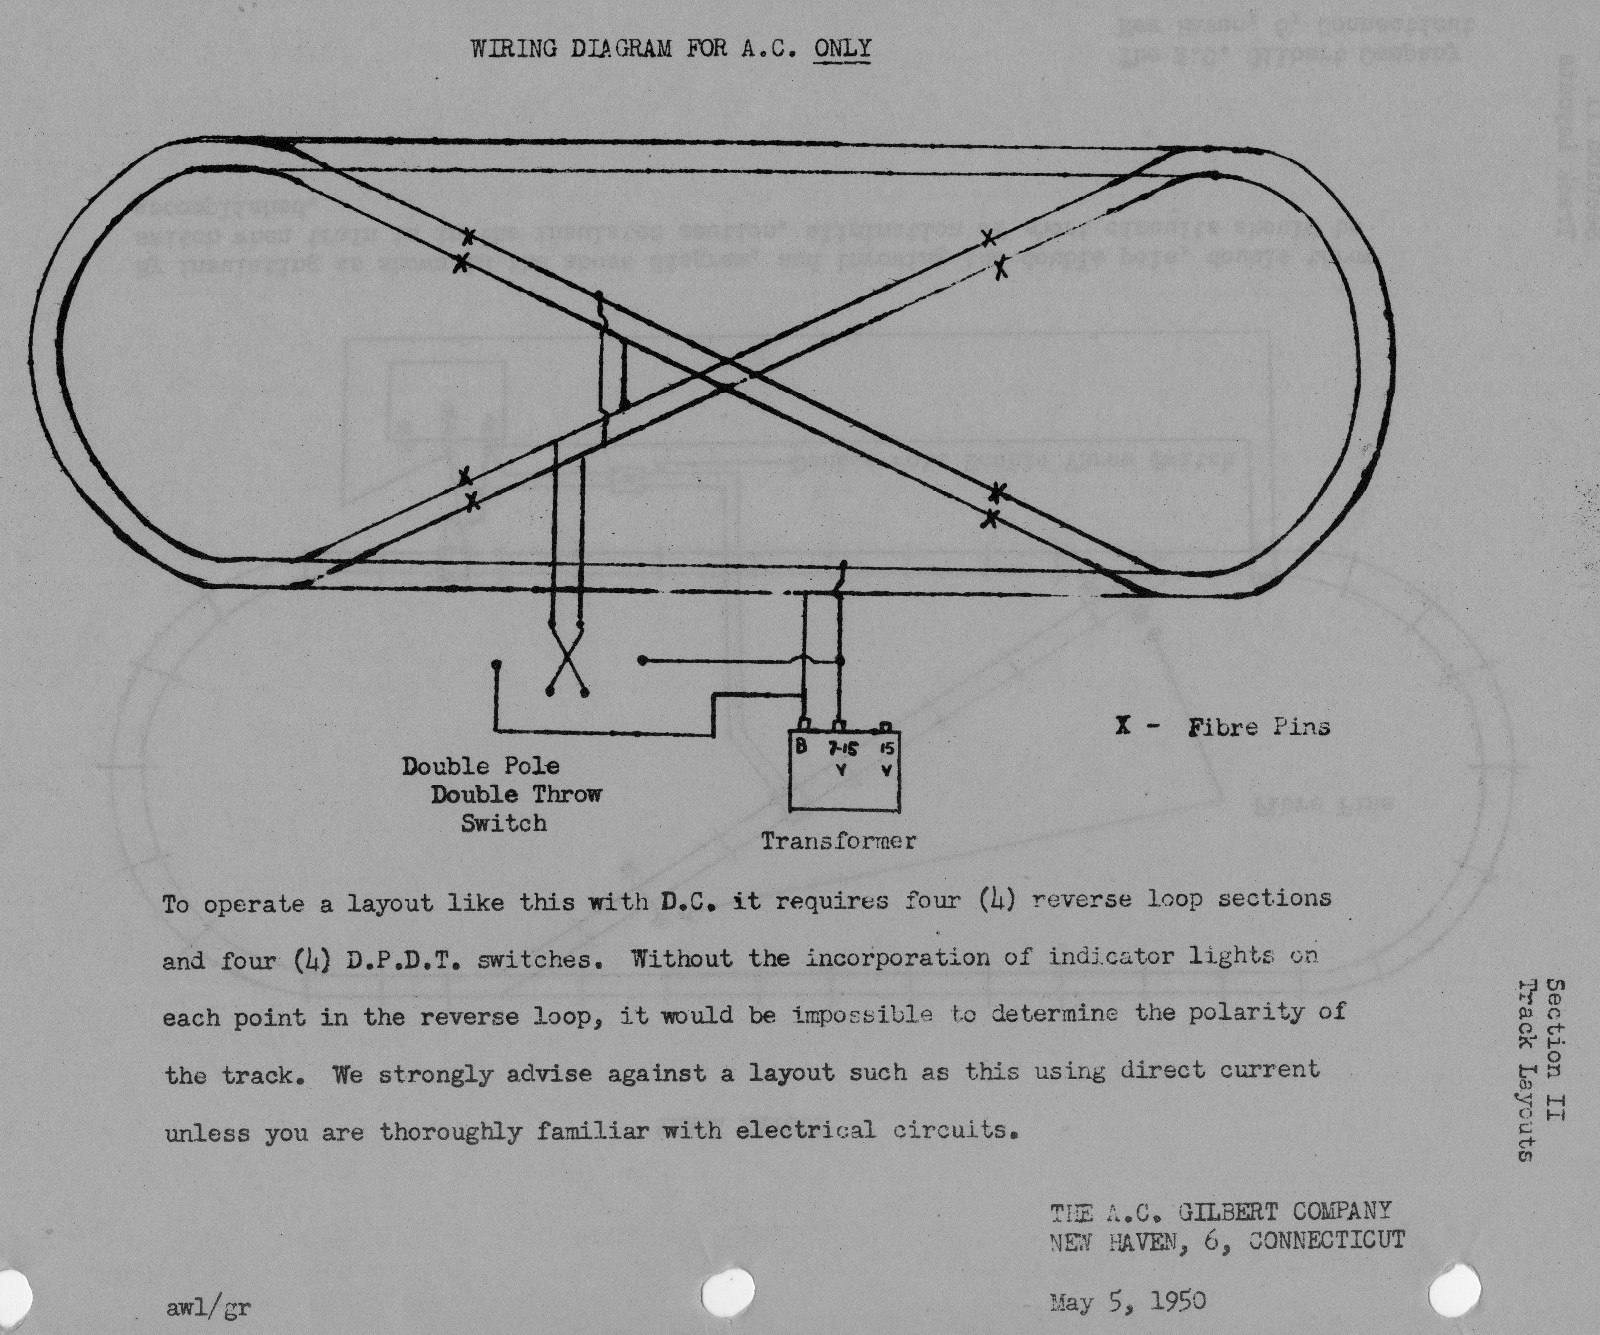 Reverse Loop Service Manual Instructions Lo Res 003 e1394890520604 american flyer track layouts traindr american flyer wiring diagrams at nearapp.co